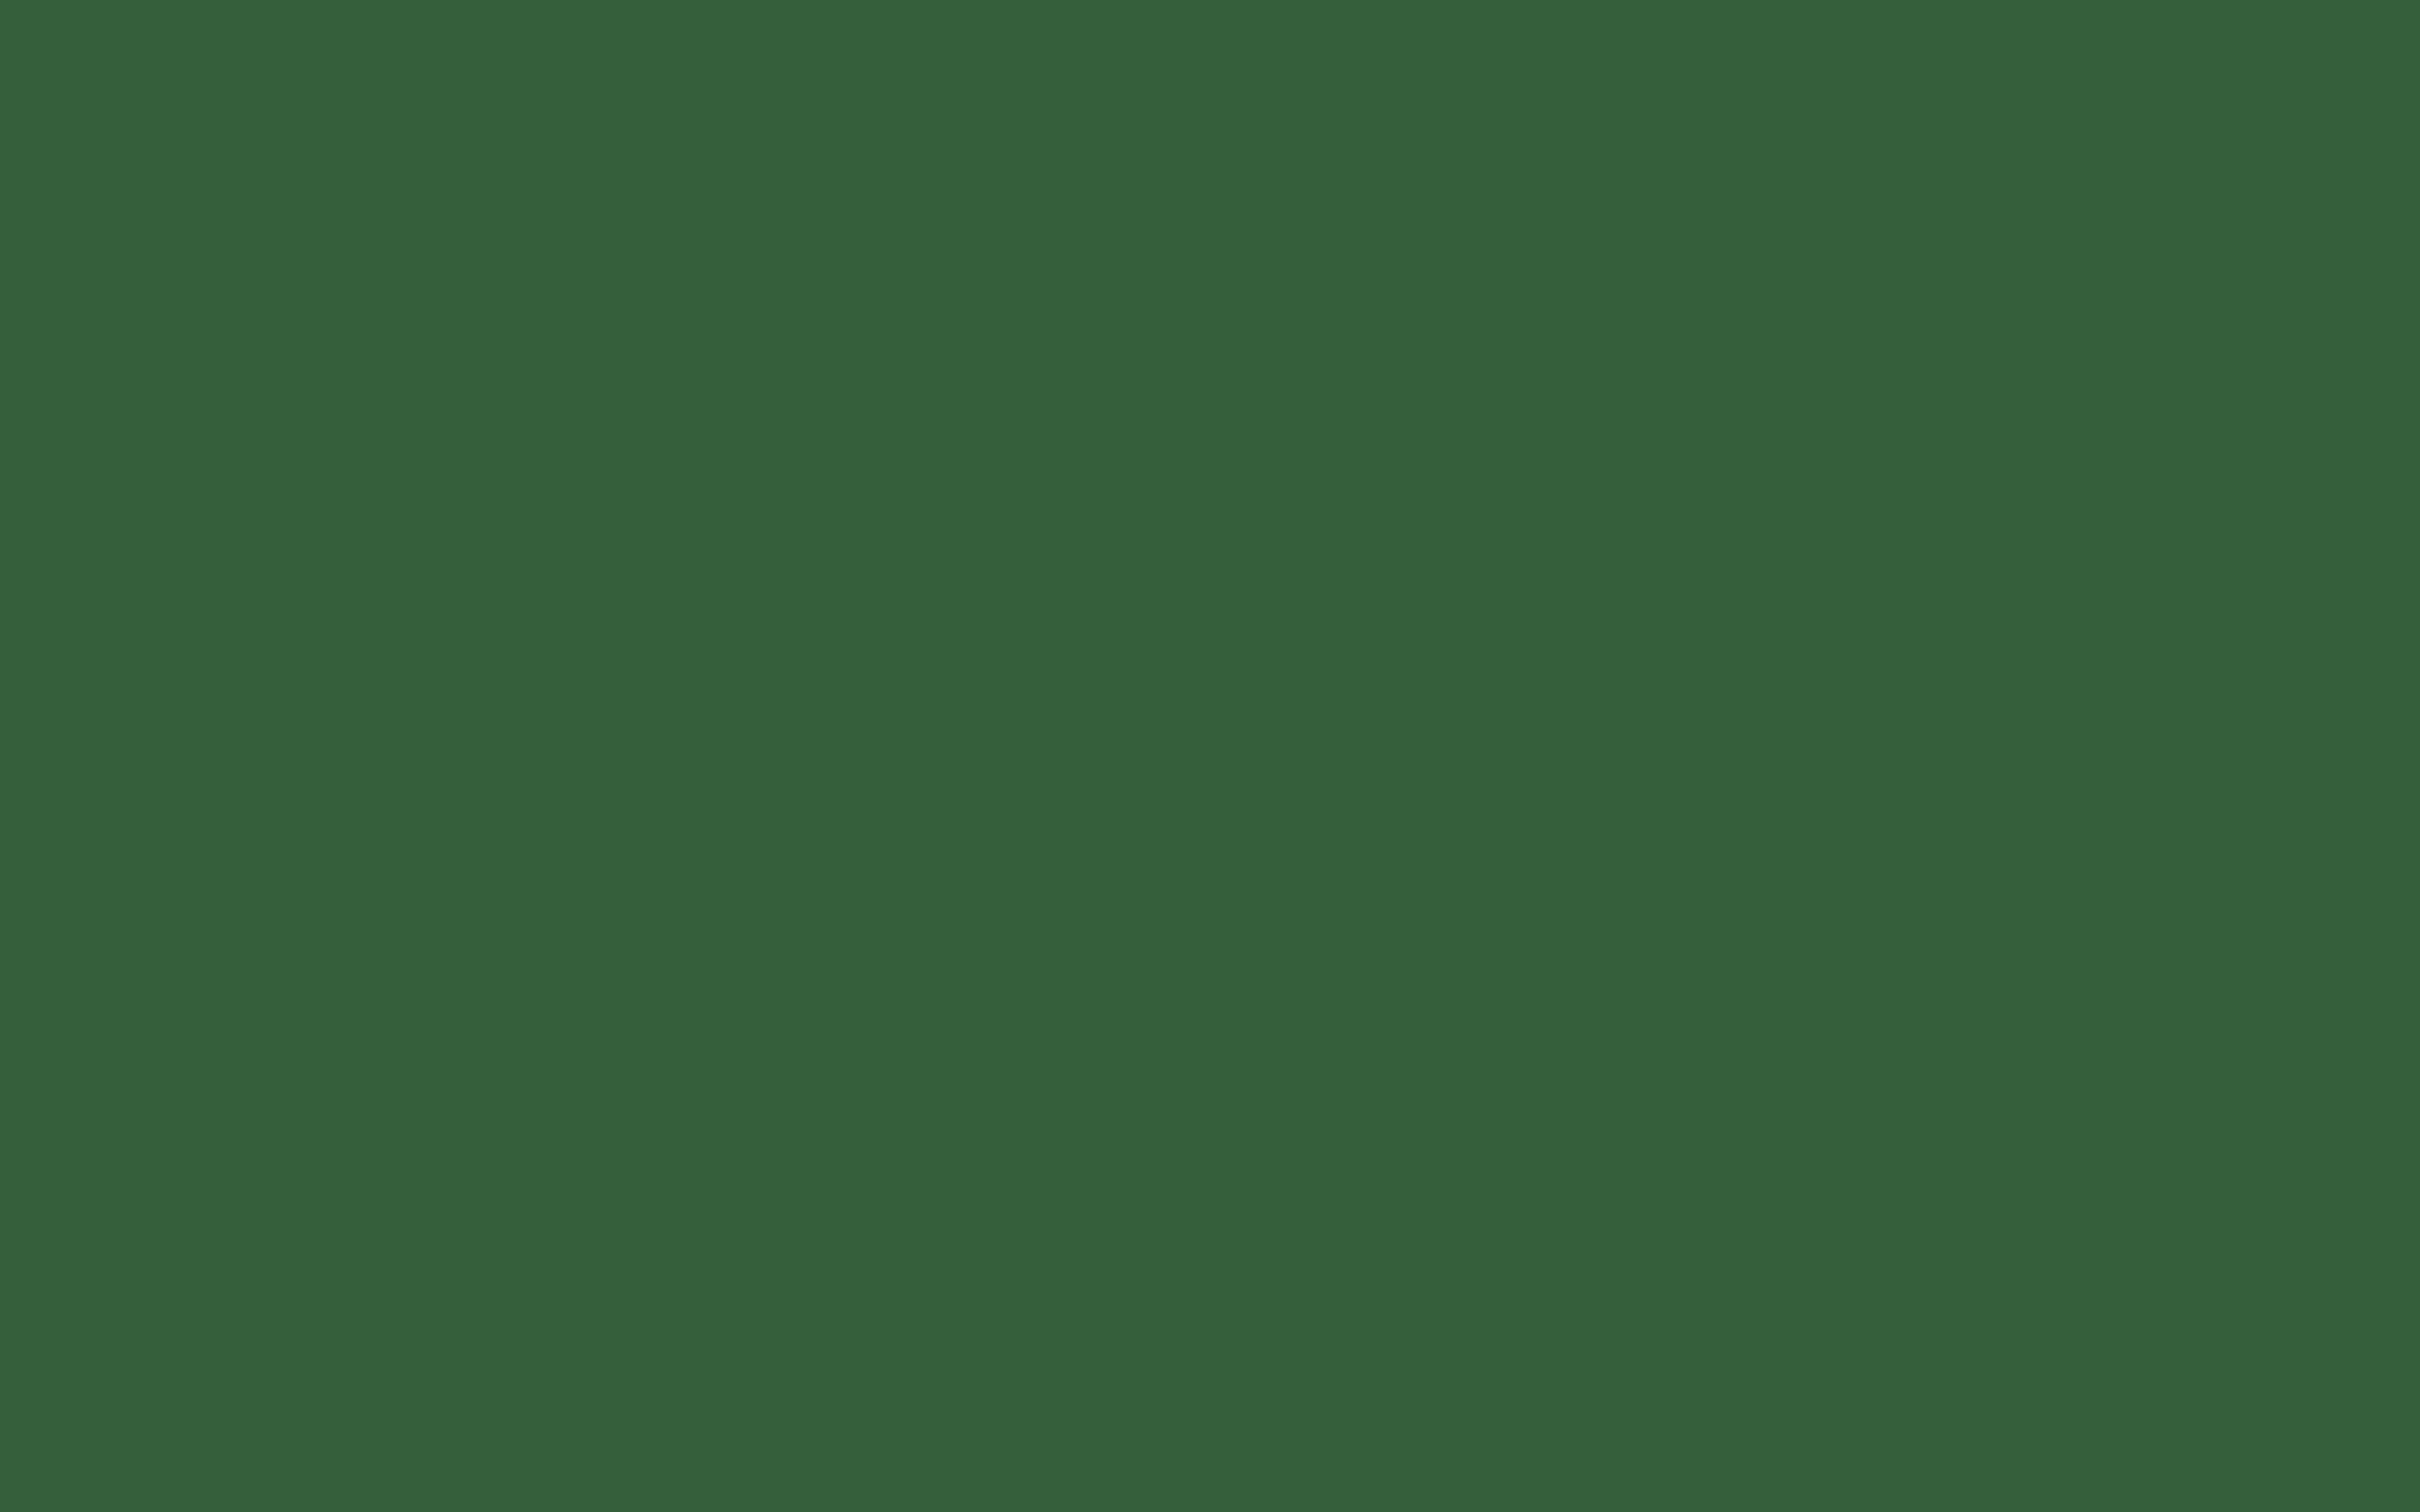 2560x1600 Hunter Green Solid Color Background